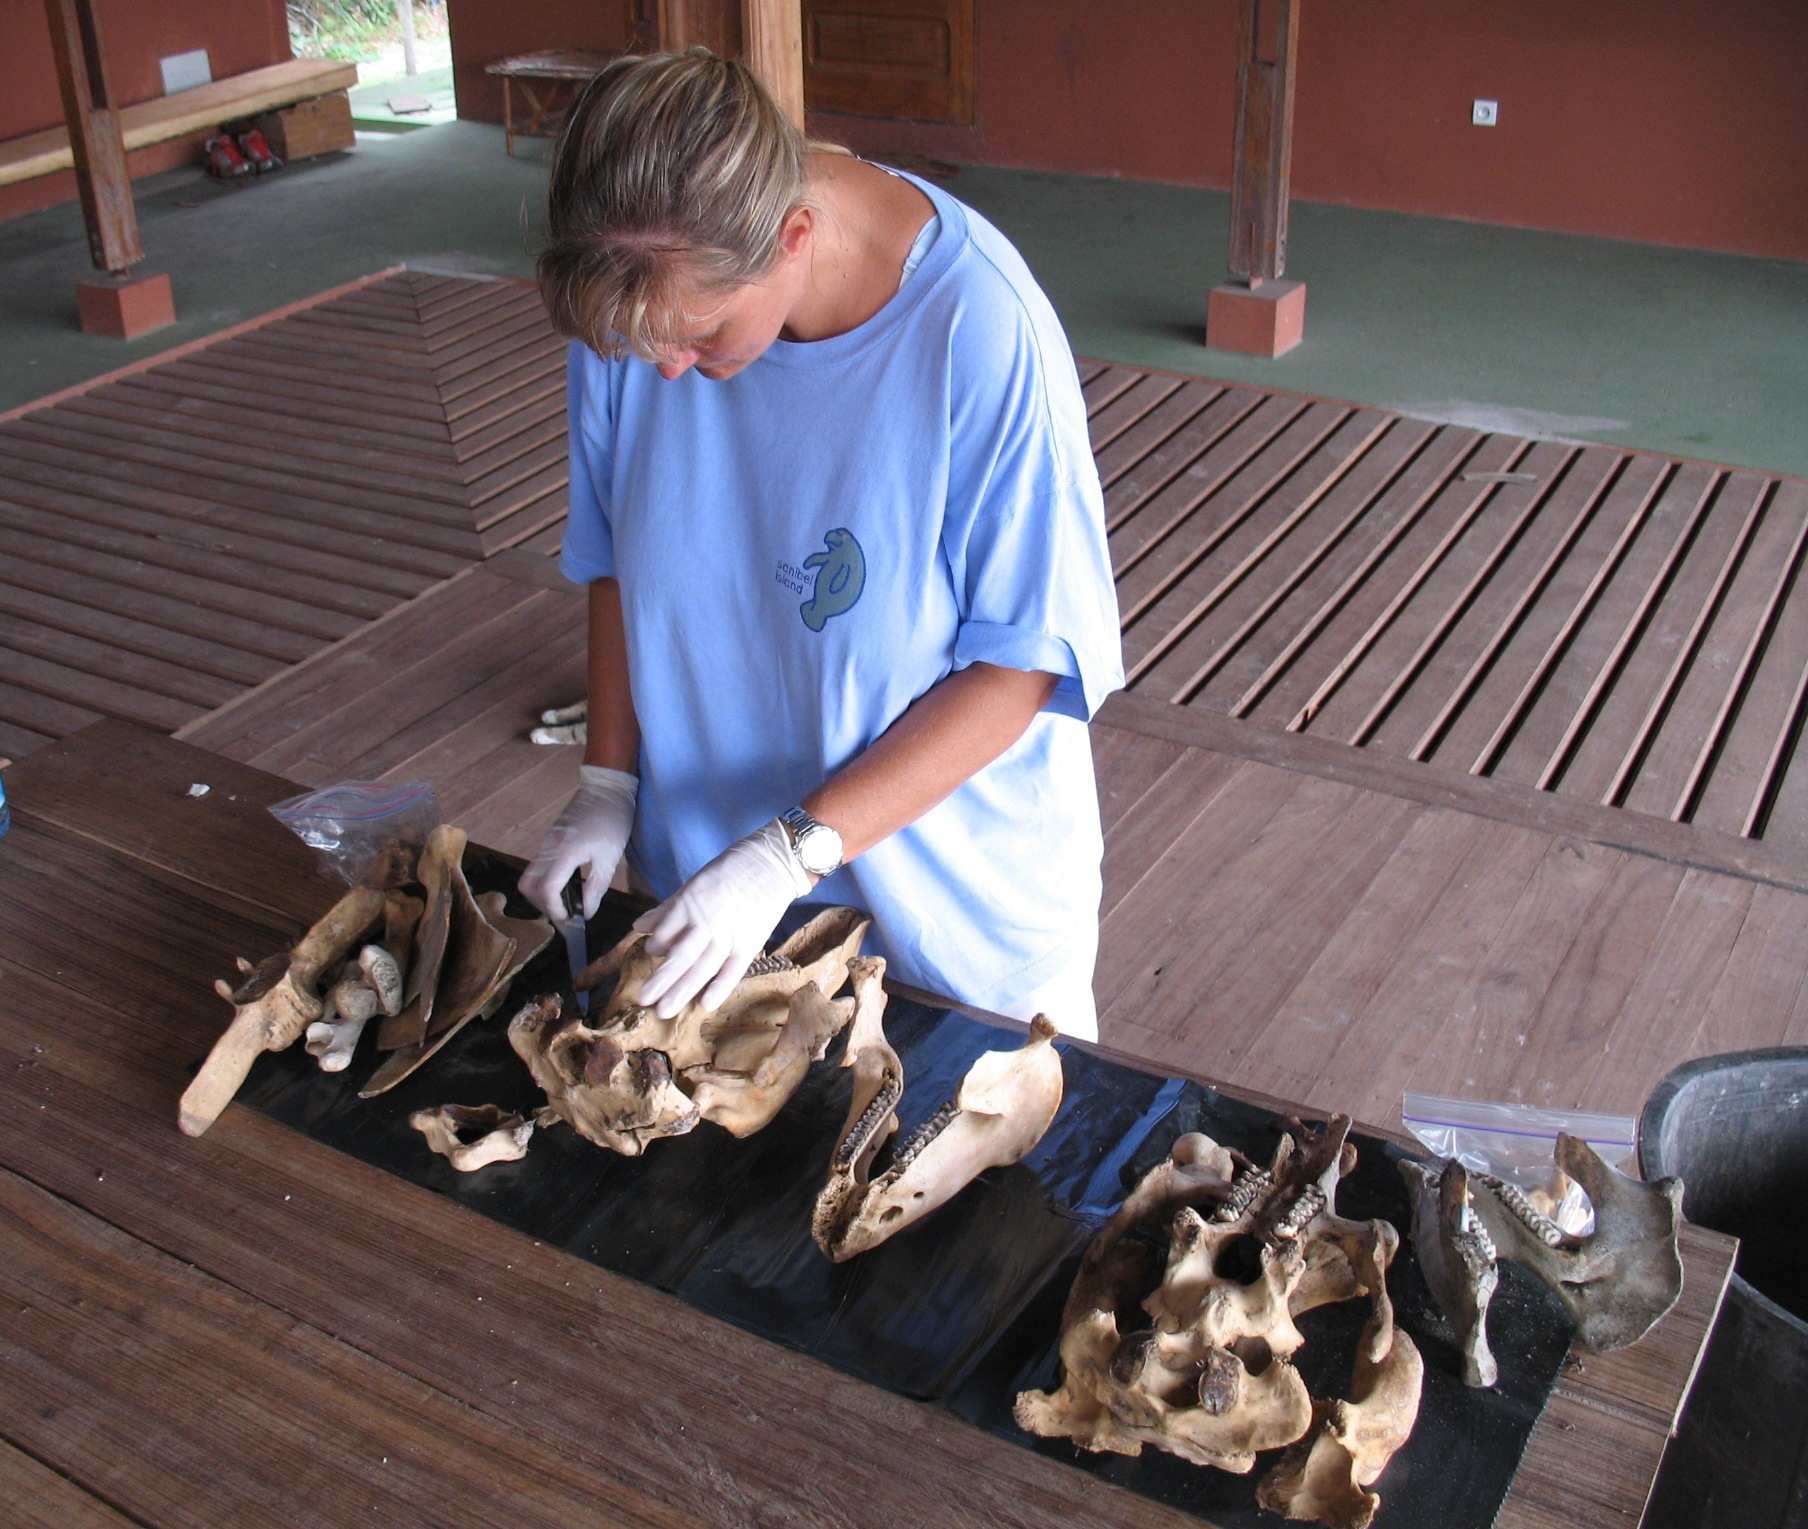 Dr. Keith Diagne examines manatee skulls in Gabon.